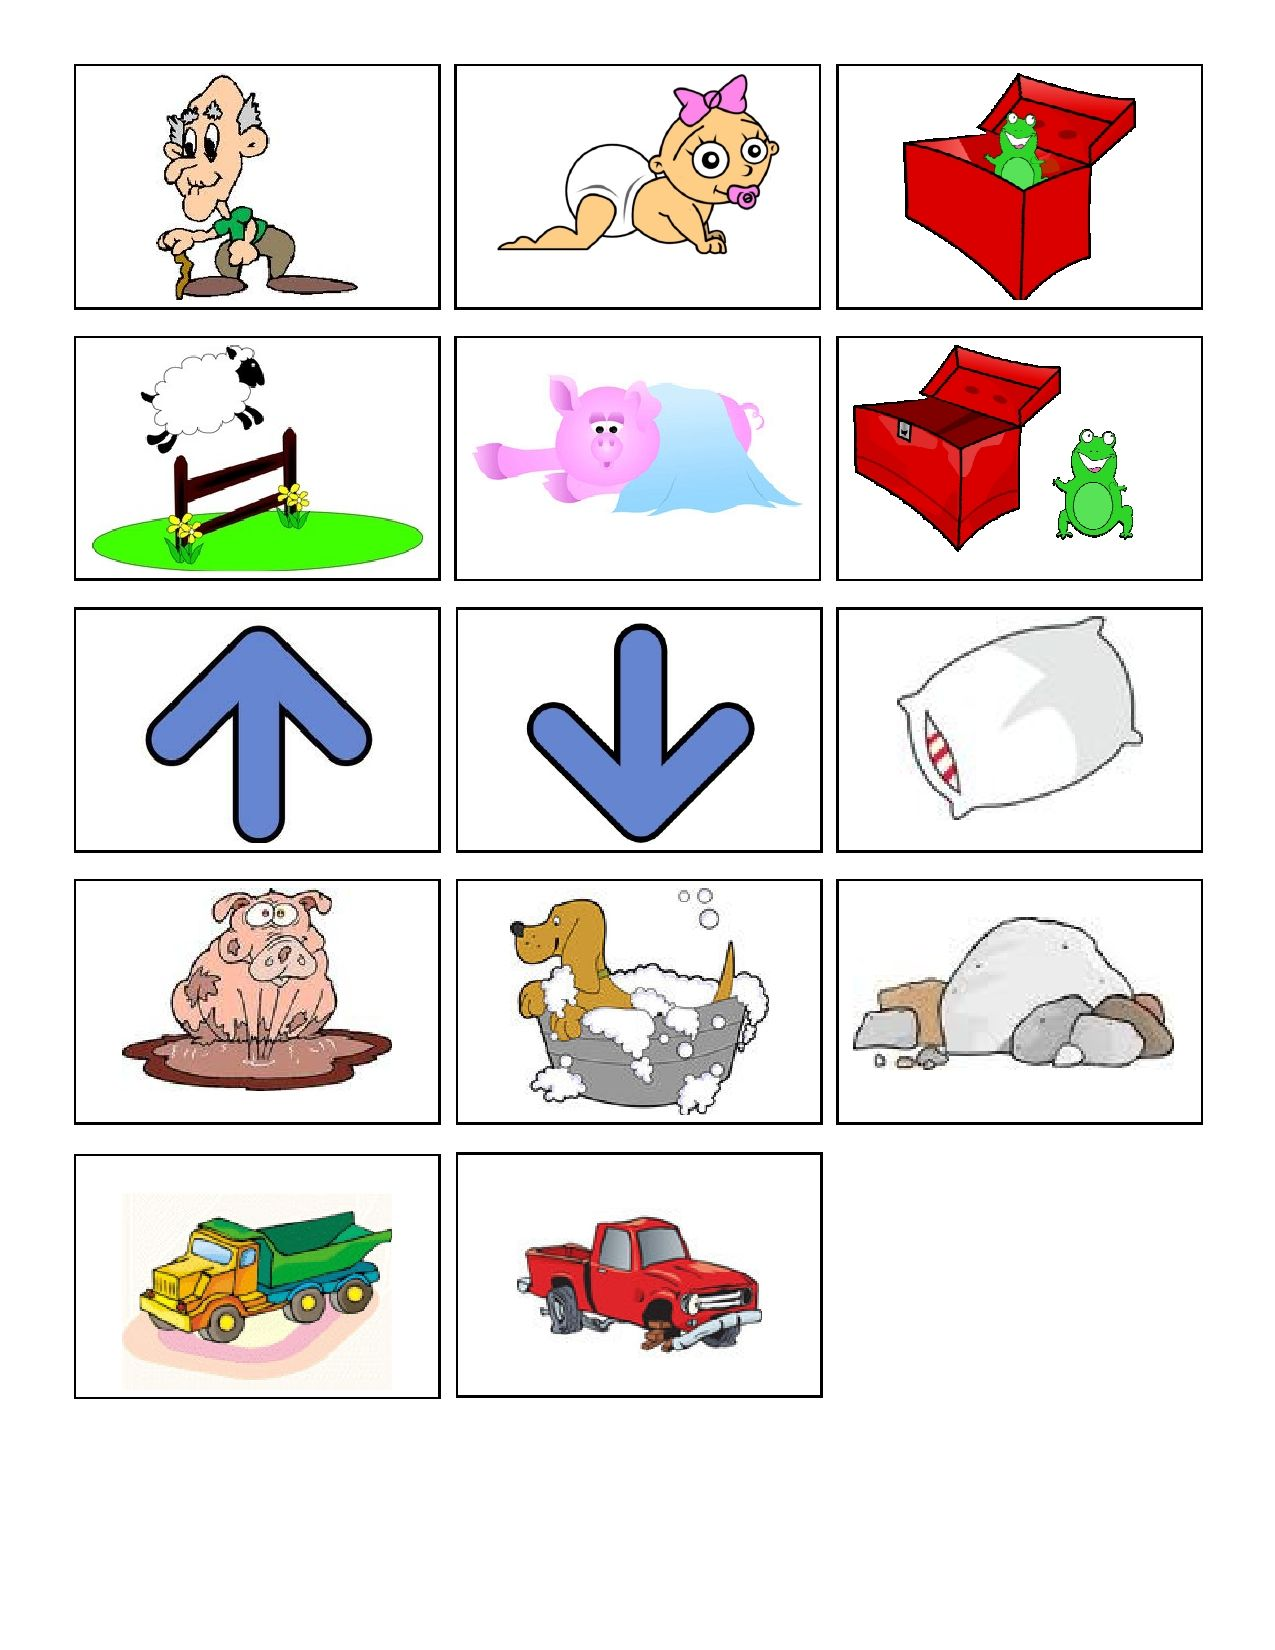 Worksheet Opposites For Preschool 1000 images about oppsites on pinterest opposite words board book and themes for preschool